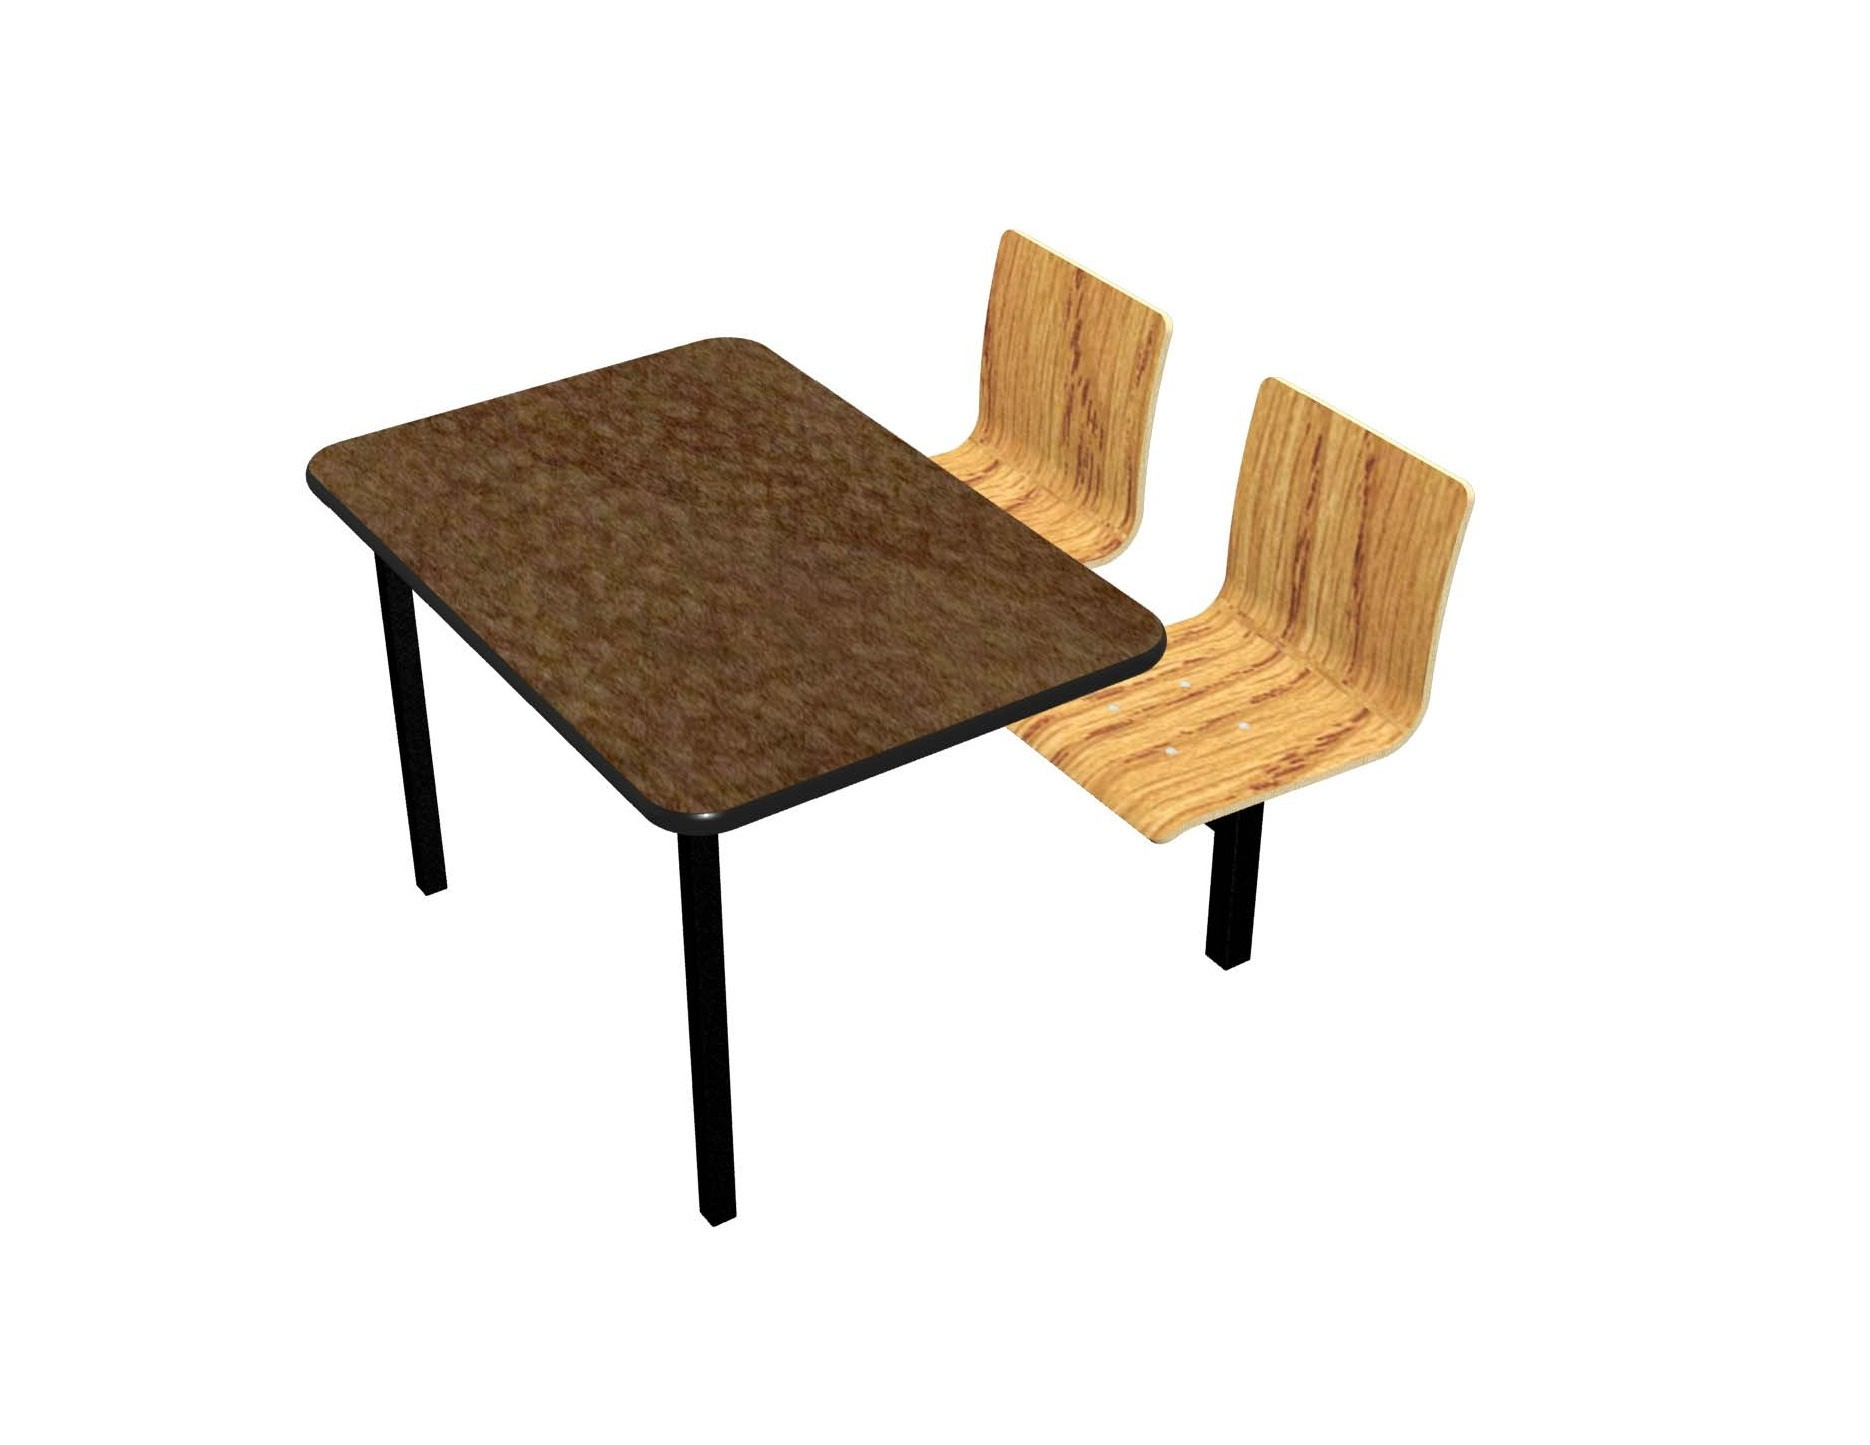 Morro Zephyr laminate table, Black vinyl, Natural Oak laminate chairhead